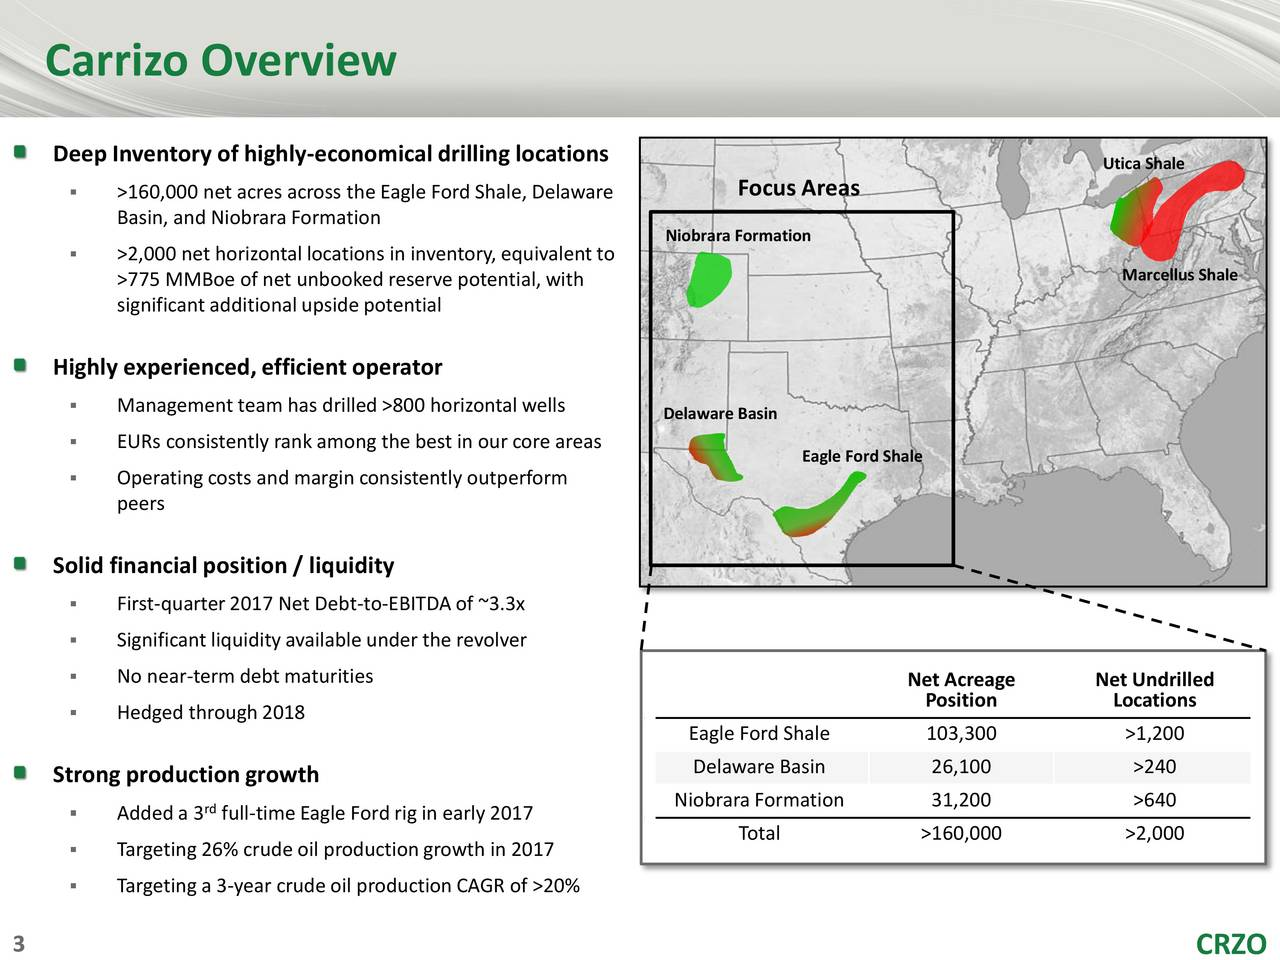 Deep Inventory of highly-economical drilling locations Utica Shale >160,000 net acres across the Eagle Ford Shale, Delaware Focus Areas Basin, and Niobrara Formation Niobrara Formation >2,000 net horizontal locations in inventory,equivalent to >775 MMBoe of net unbooked reserve potential, with Marcellus Shale significant additionalupside potential Highly experienced,efficient operator Management team has drilled >800 horizontal wells Delaware Basin EURs consistently rank among the best in our core areas Eagle Ford Shale Operatingcosts and margin consistently outperform peers Solid financial position / liquidity First-quarter2017 Net Debt-to-EBITDA of ~3.3x Significant liquidityavailable under the revolver No near-term debt maturities Net Acreage Net Undrilled Position Locations Hedged through2018 Eagle Ford Shale 103,300 >1,200 Delaware Basin 26,100 >240 Strong productiongrowth Added a 3 full-time Eagle Ford rig in early 2017 Niobrara Formation 31,200 >640 Total >160,000 >2,000 Targeting 26% crude oil productiongrowth in 2017 Targeting a 3-year crude oil productionCAGR of >20%